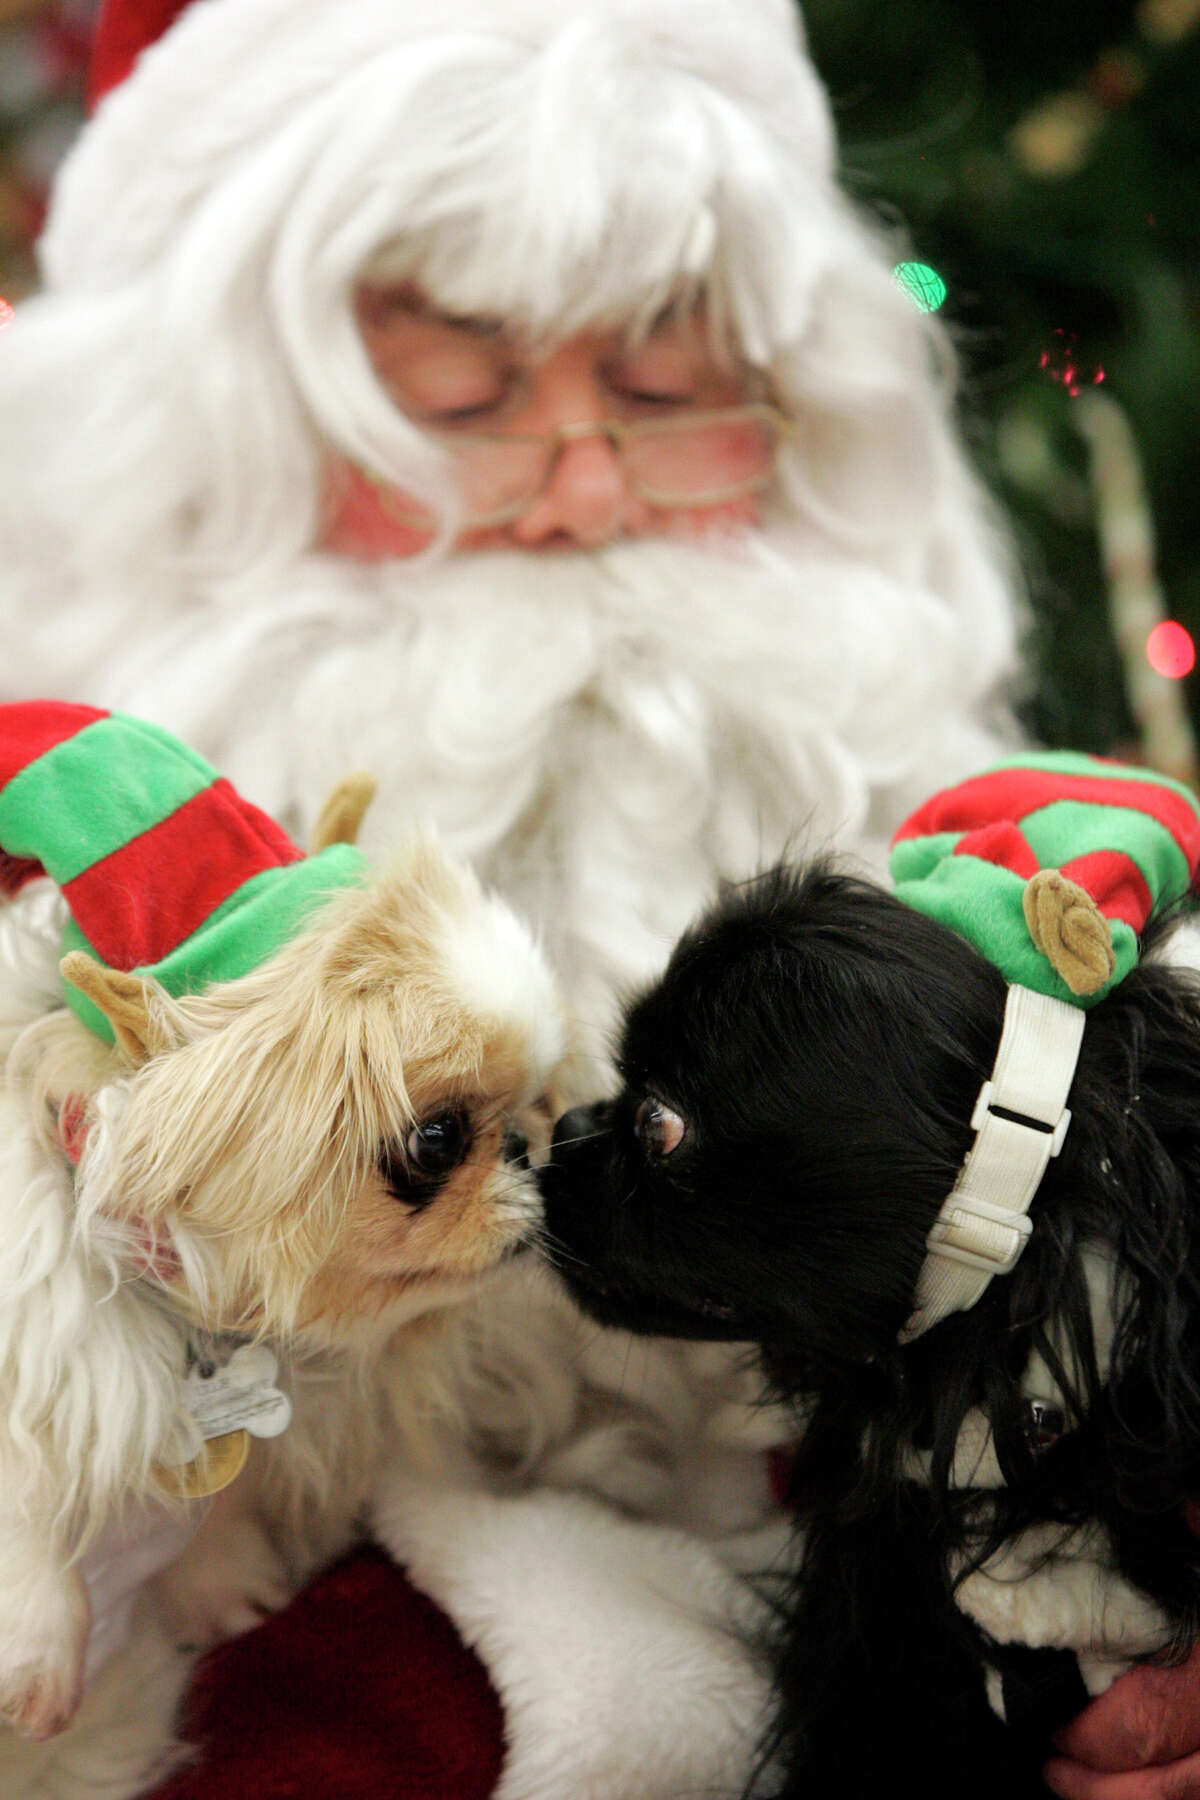 Lily and Ernie give each other a little kiss as they get ready to have their photos taken with Santa during the LaPorte County Small Animal Shelter's 21st annual Pet Photos with Santa, Saturday, Dec. 15, 2012, in LaPorte, Ind.